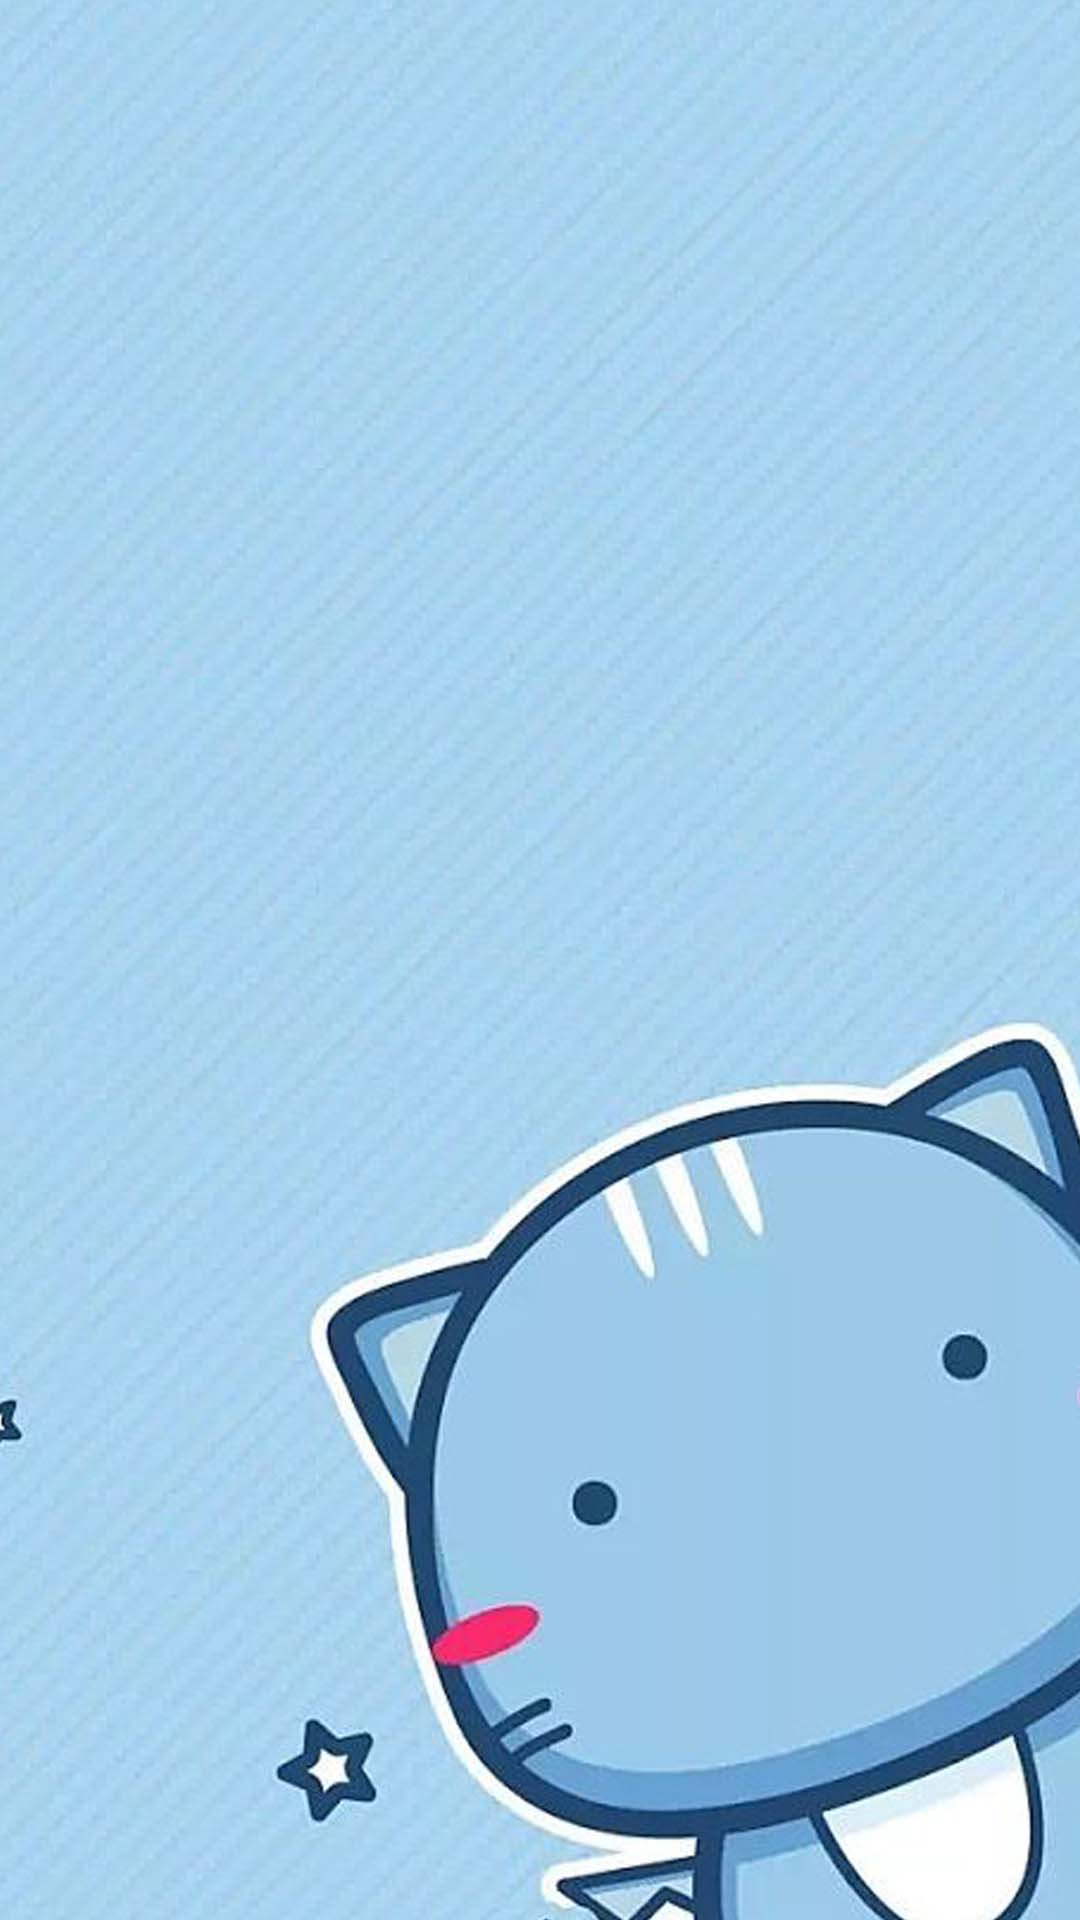 Cute wallpaper for iphone